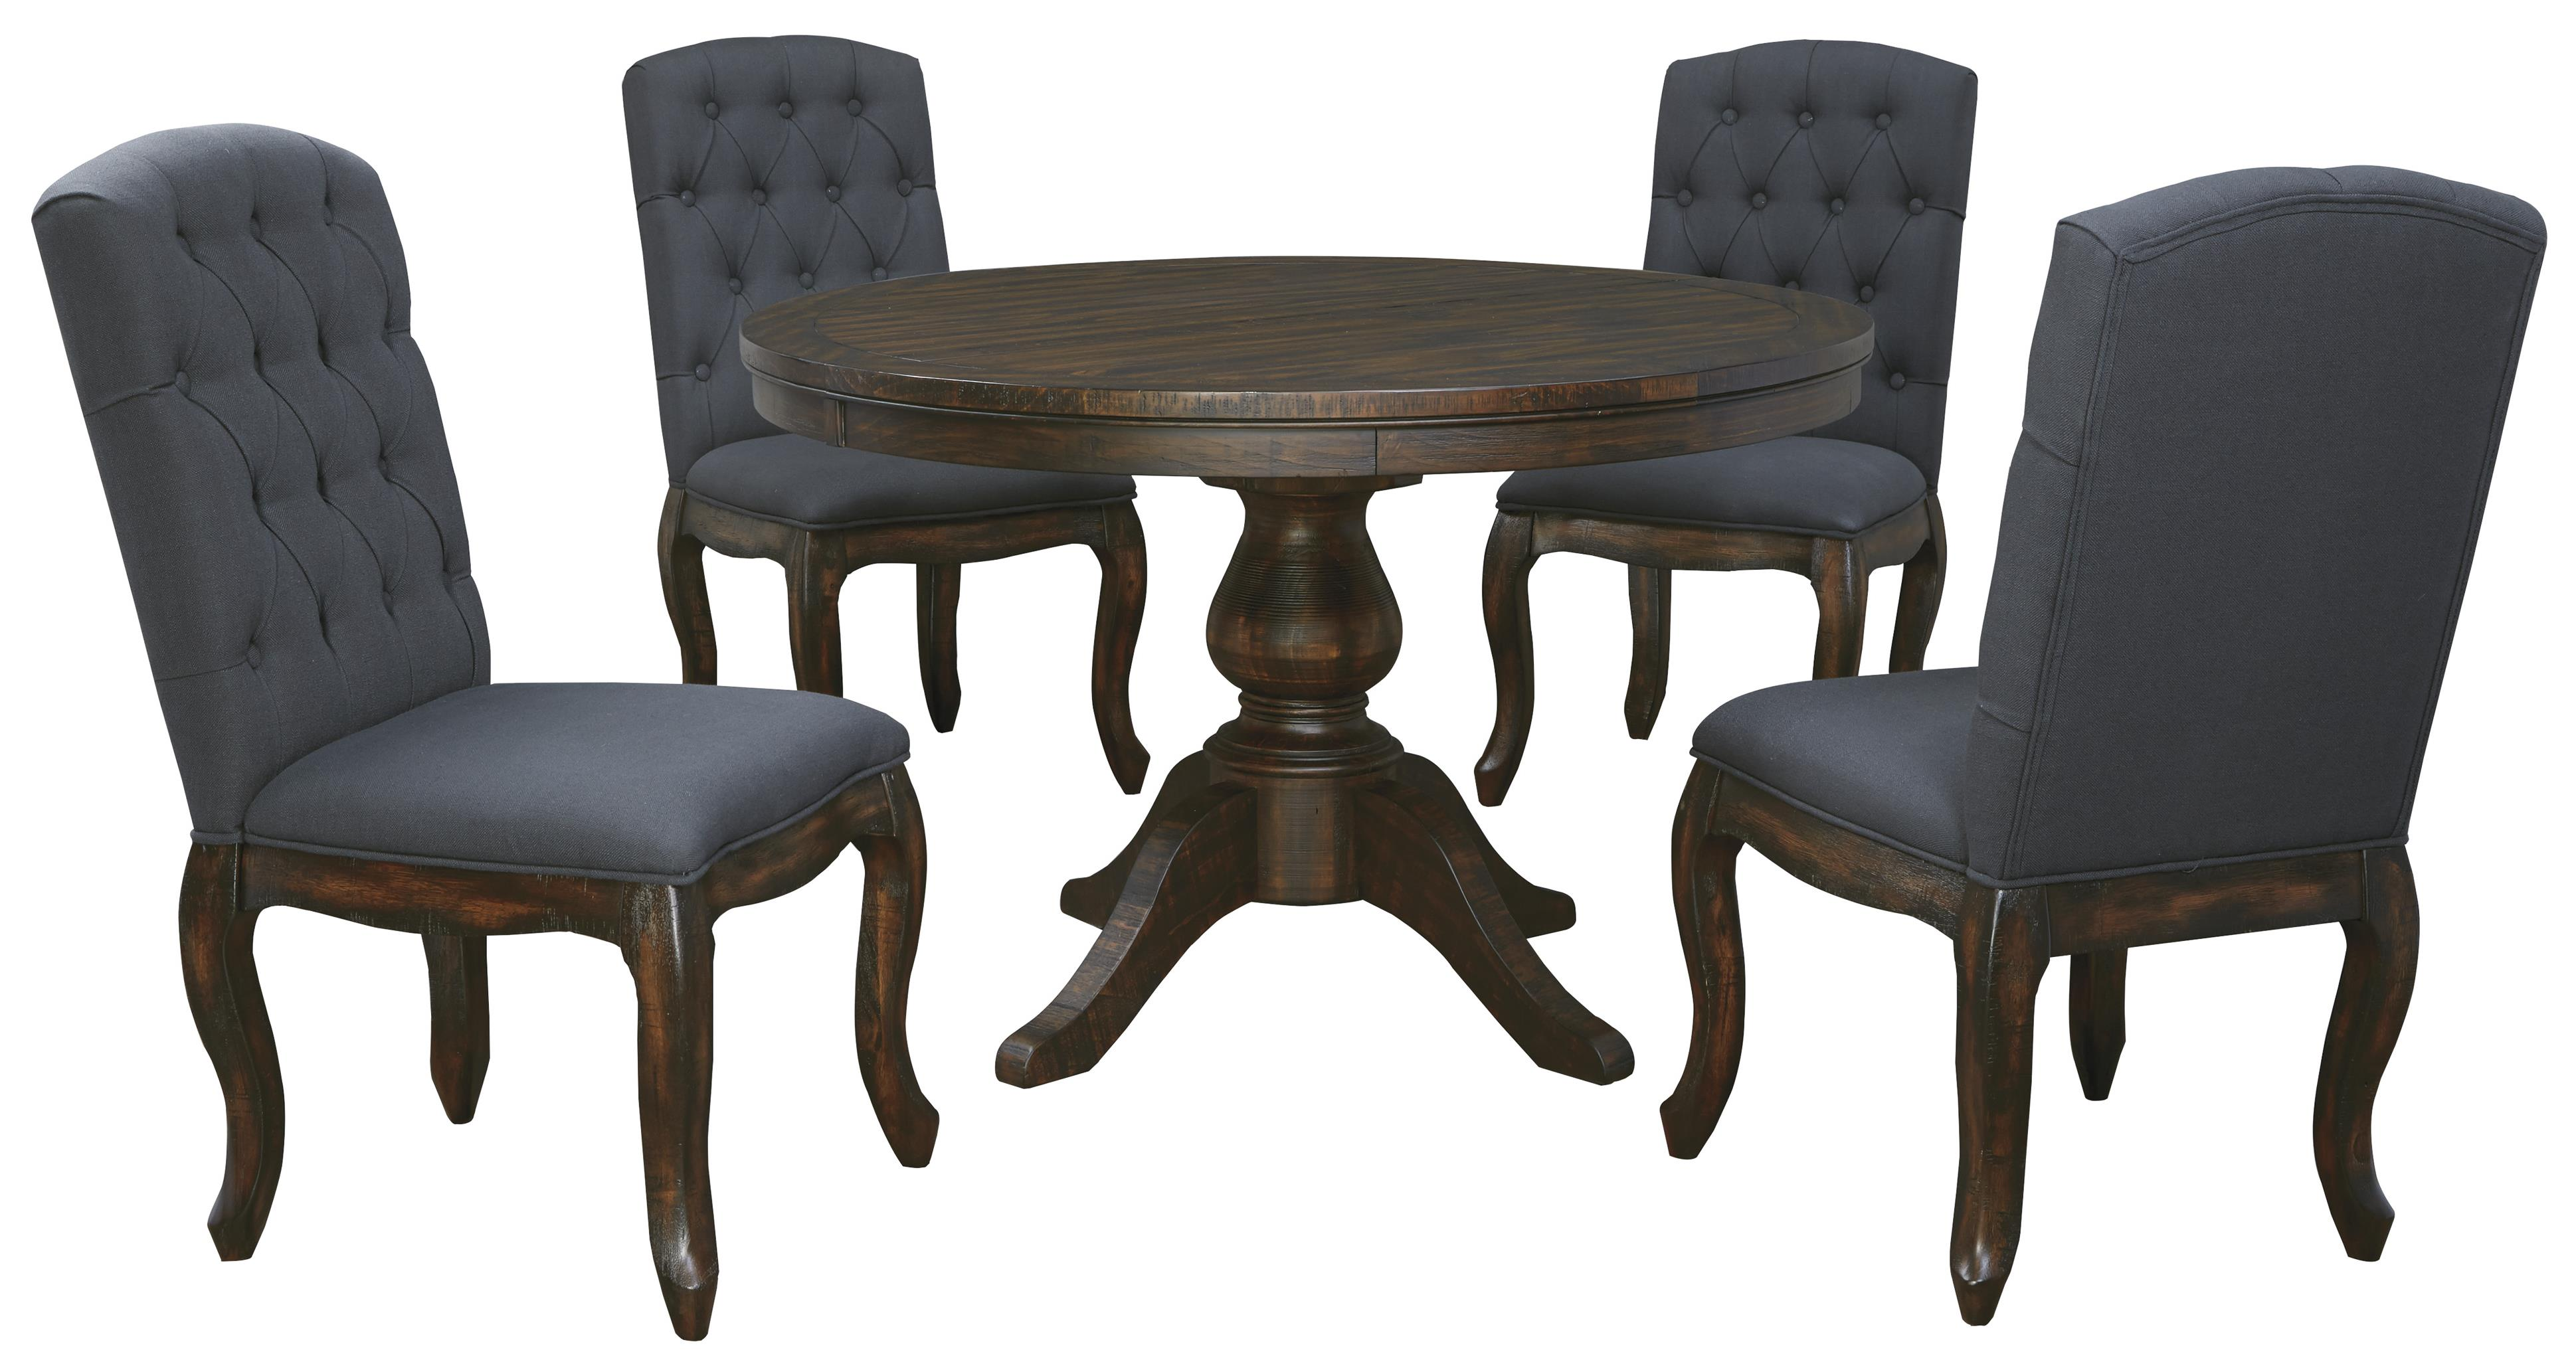 Dining Chairs Set 5 Piece Round Dining Table Set With Upholstered Side